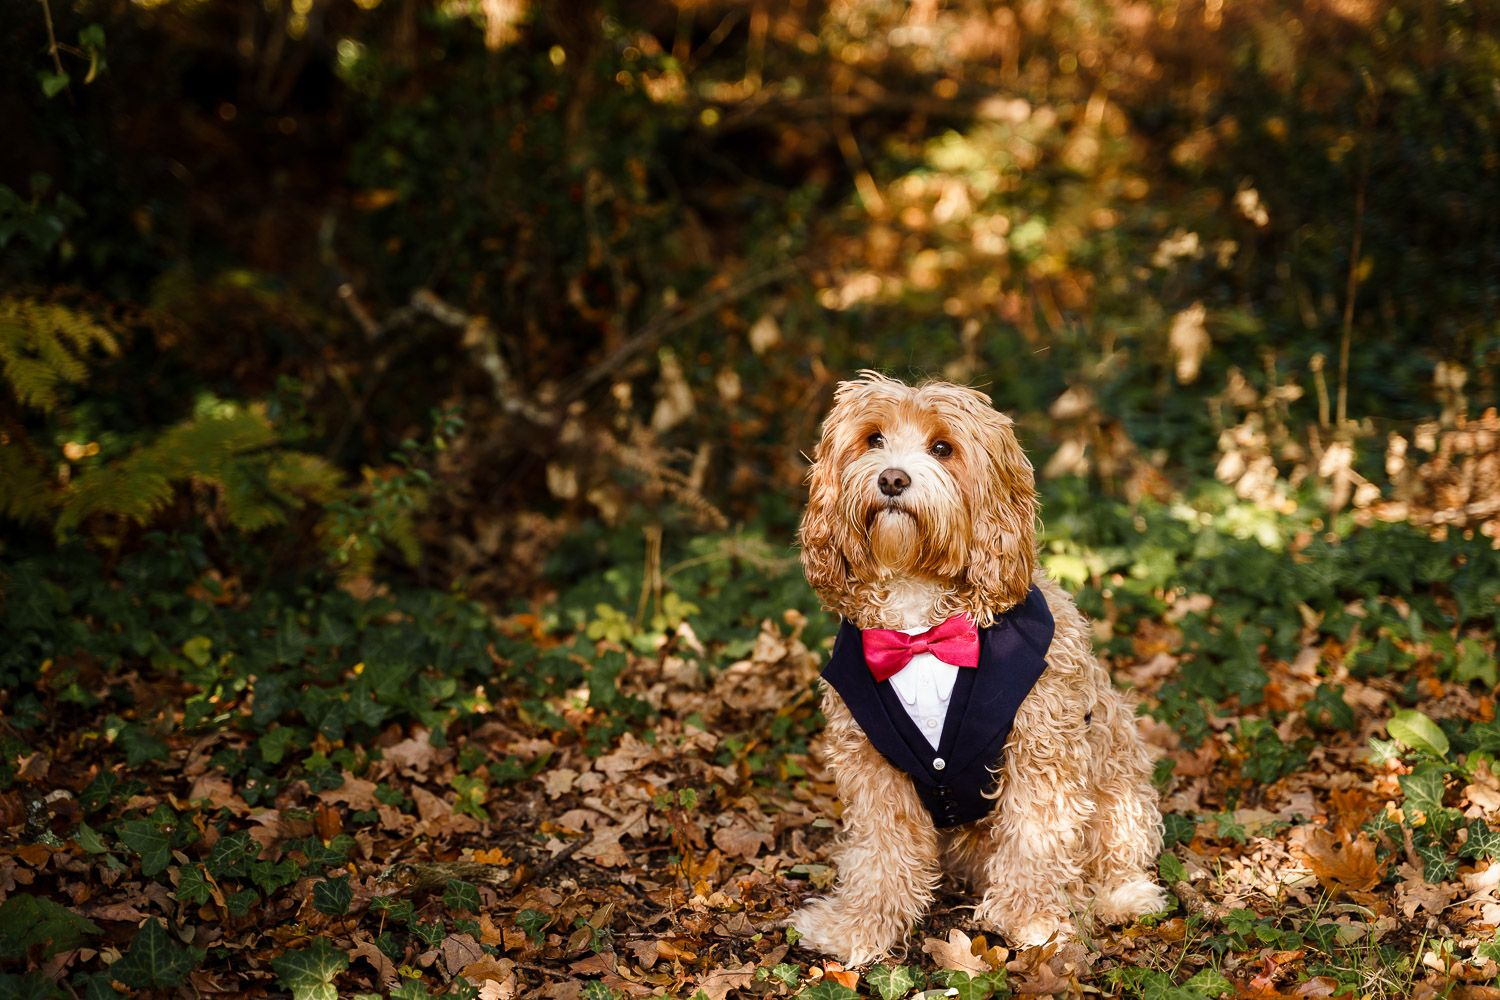 Cockapoo wearing a wedding tuxedo at an autumnal outdoor wedding. Top 10 dog-friendly wedding tips.